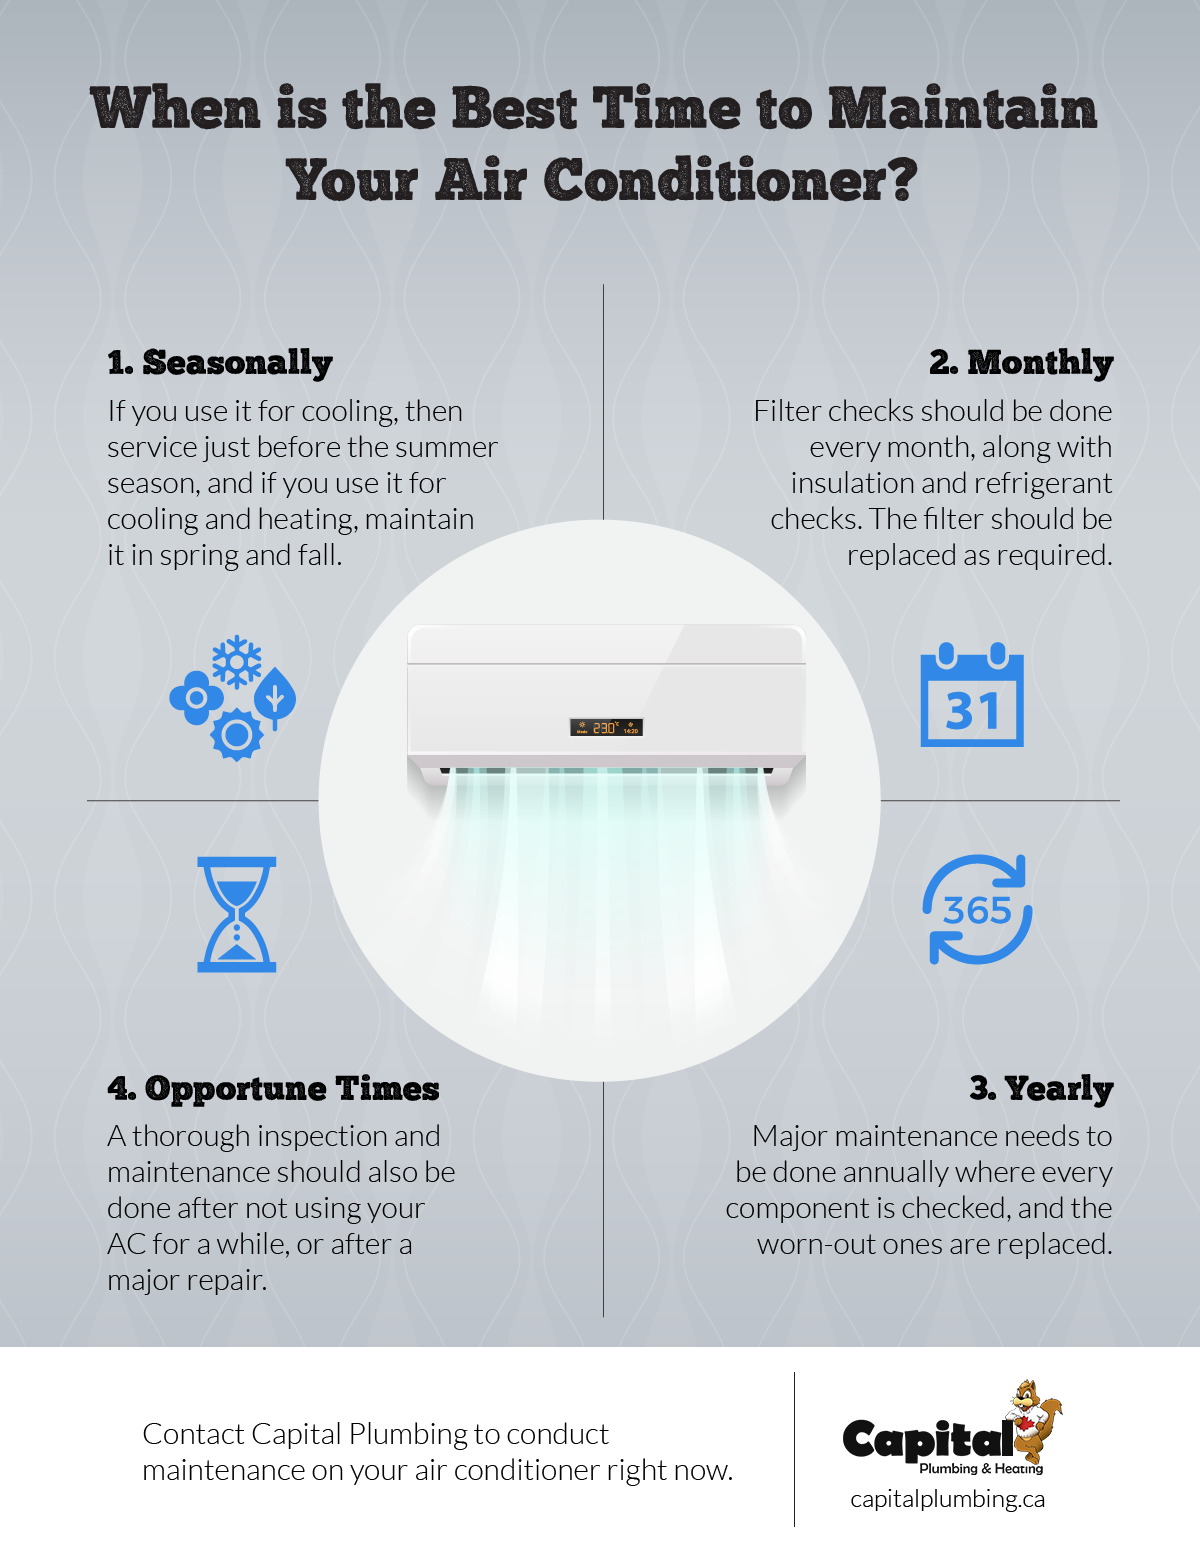 Best Time to Maintain Your Air Conditioner